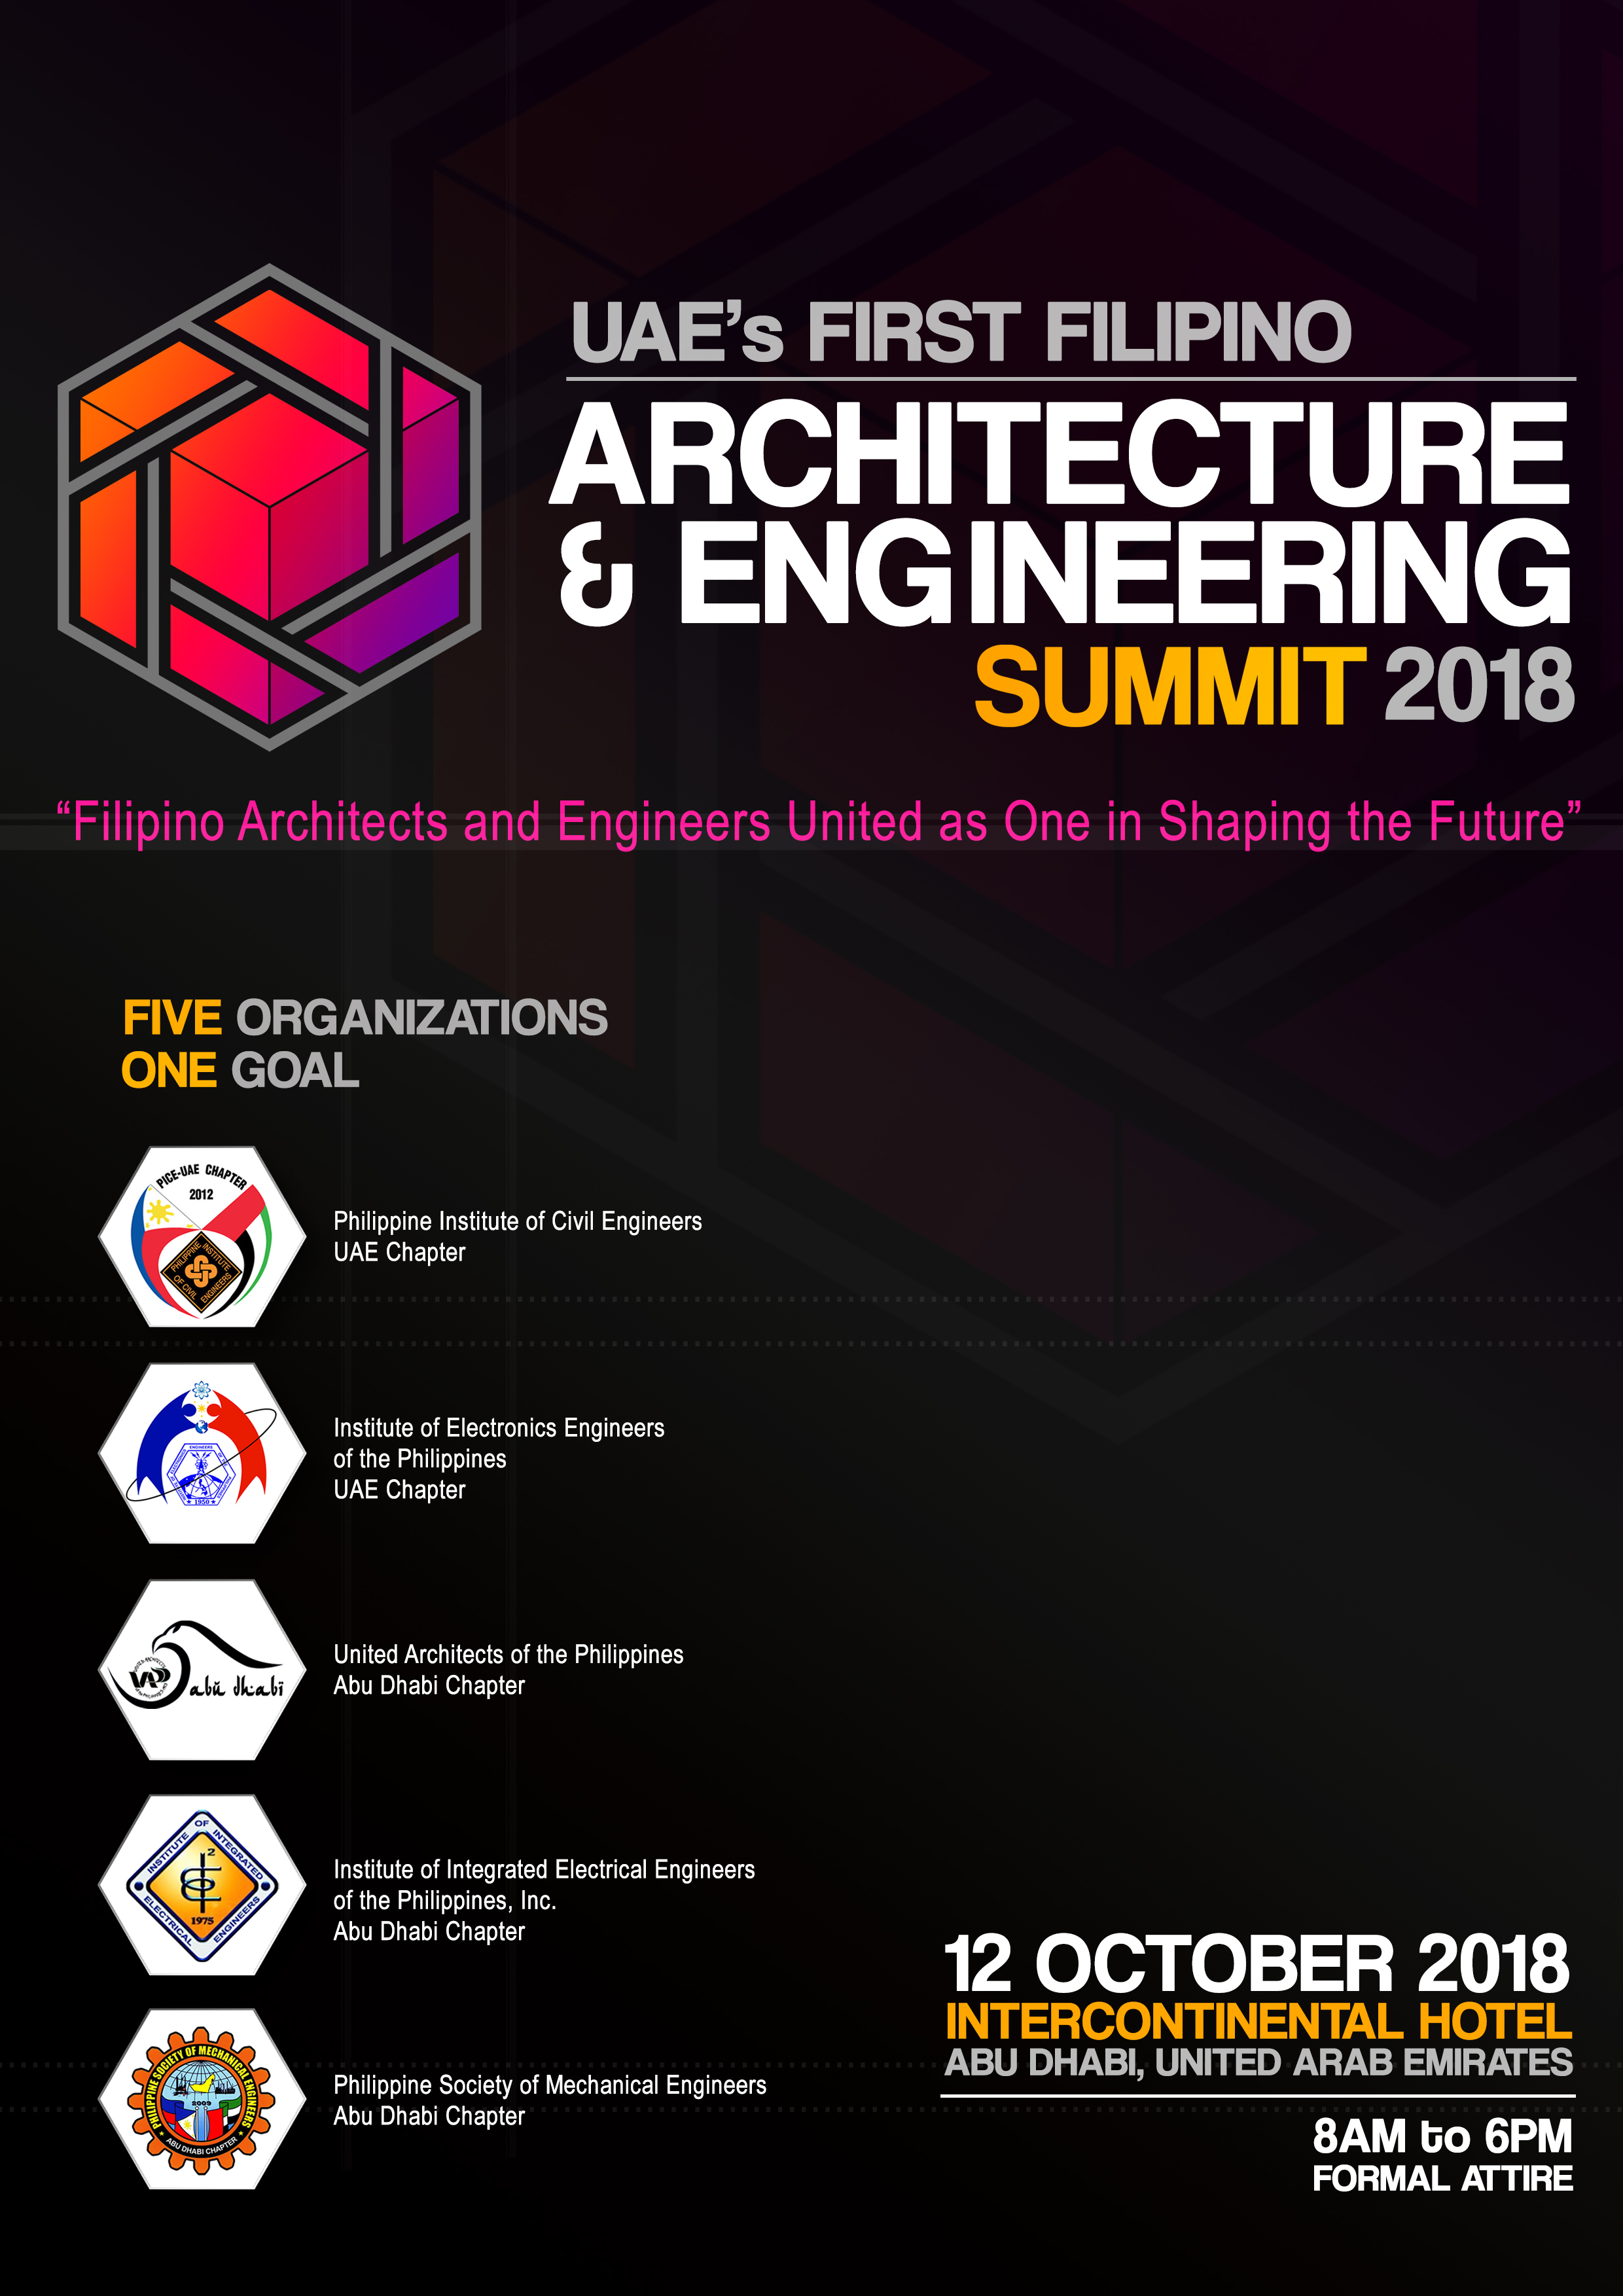 Abu Dhabi to host UAE's biggest summit for Filipino Engineers and